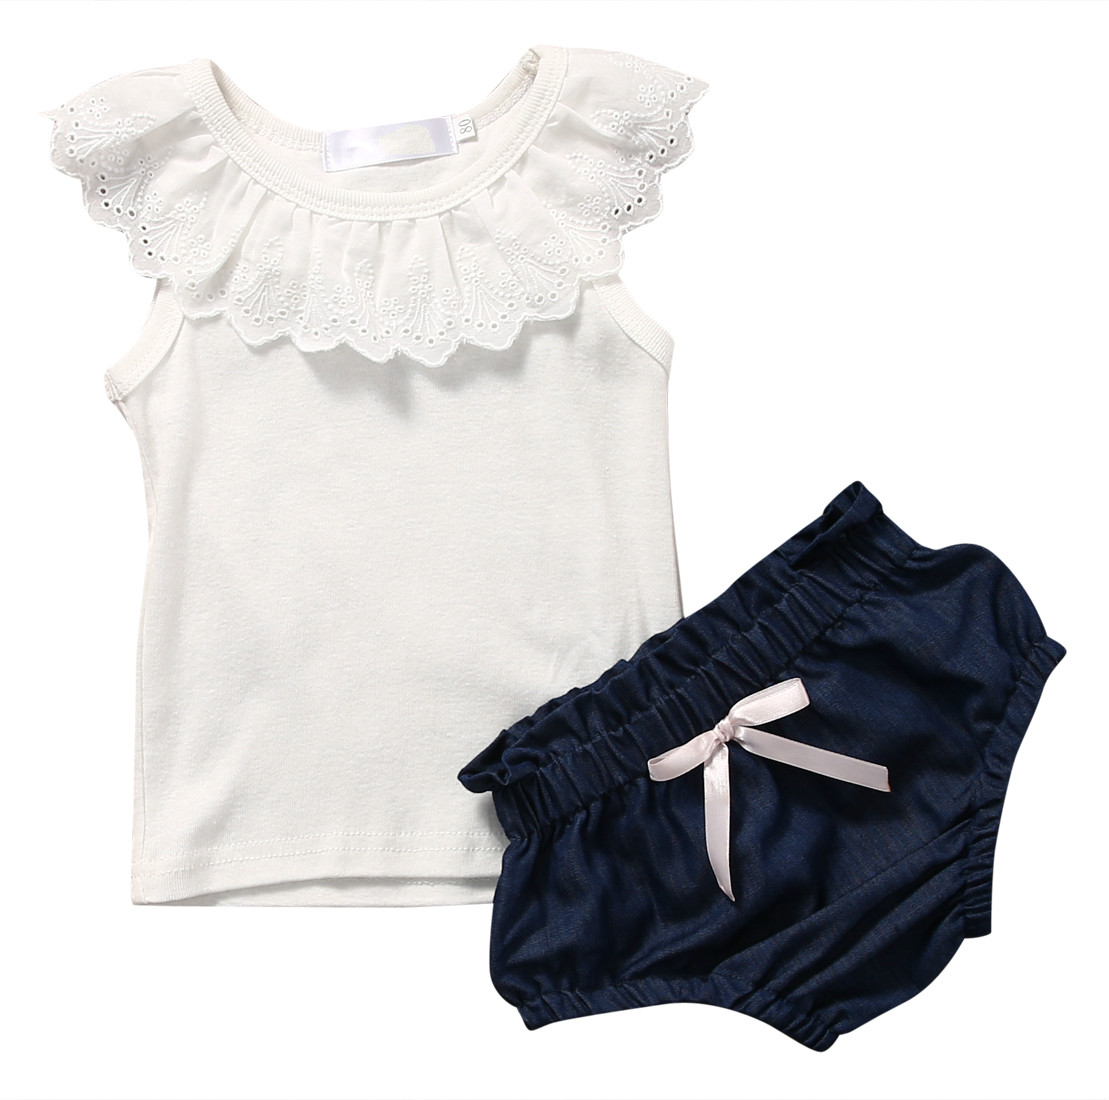 2PCS Summer Lovely Kids Girls Clothes Sets Toddler Kids Baby Girl Outfits Short Sleeve T-shirt Tank Tops Shorts Pant Clothes Set